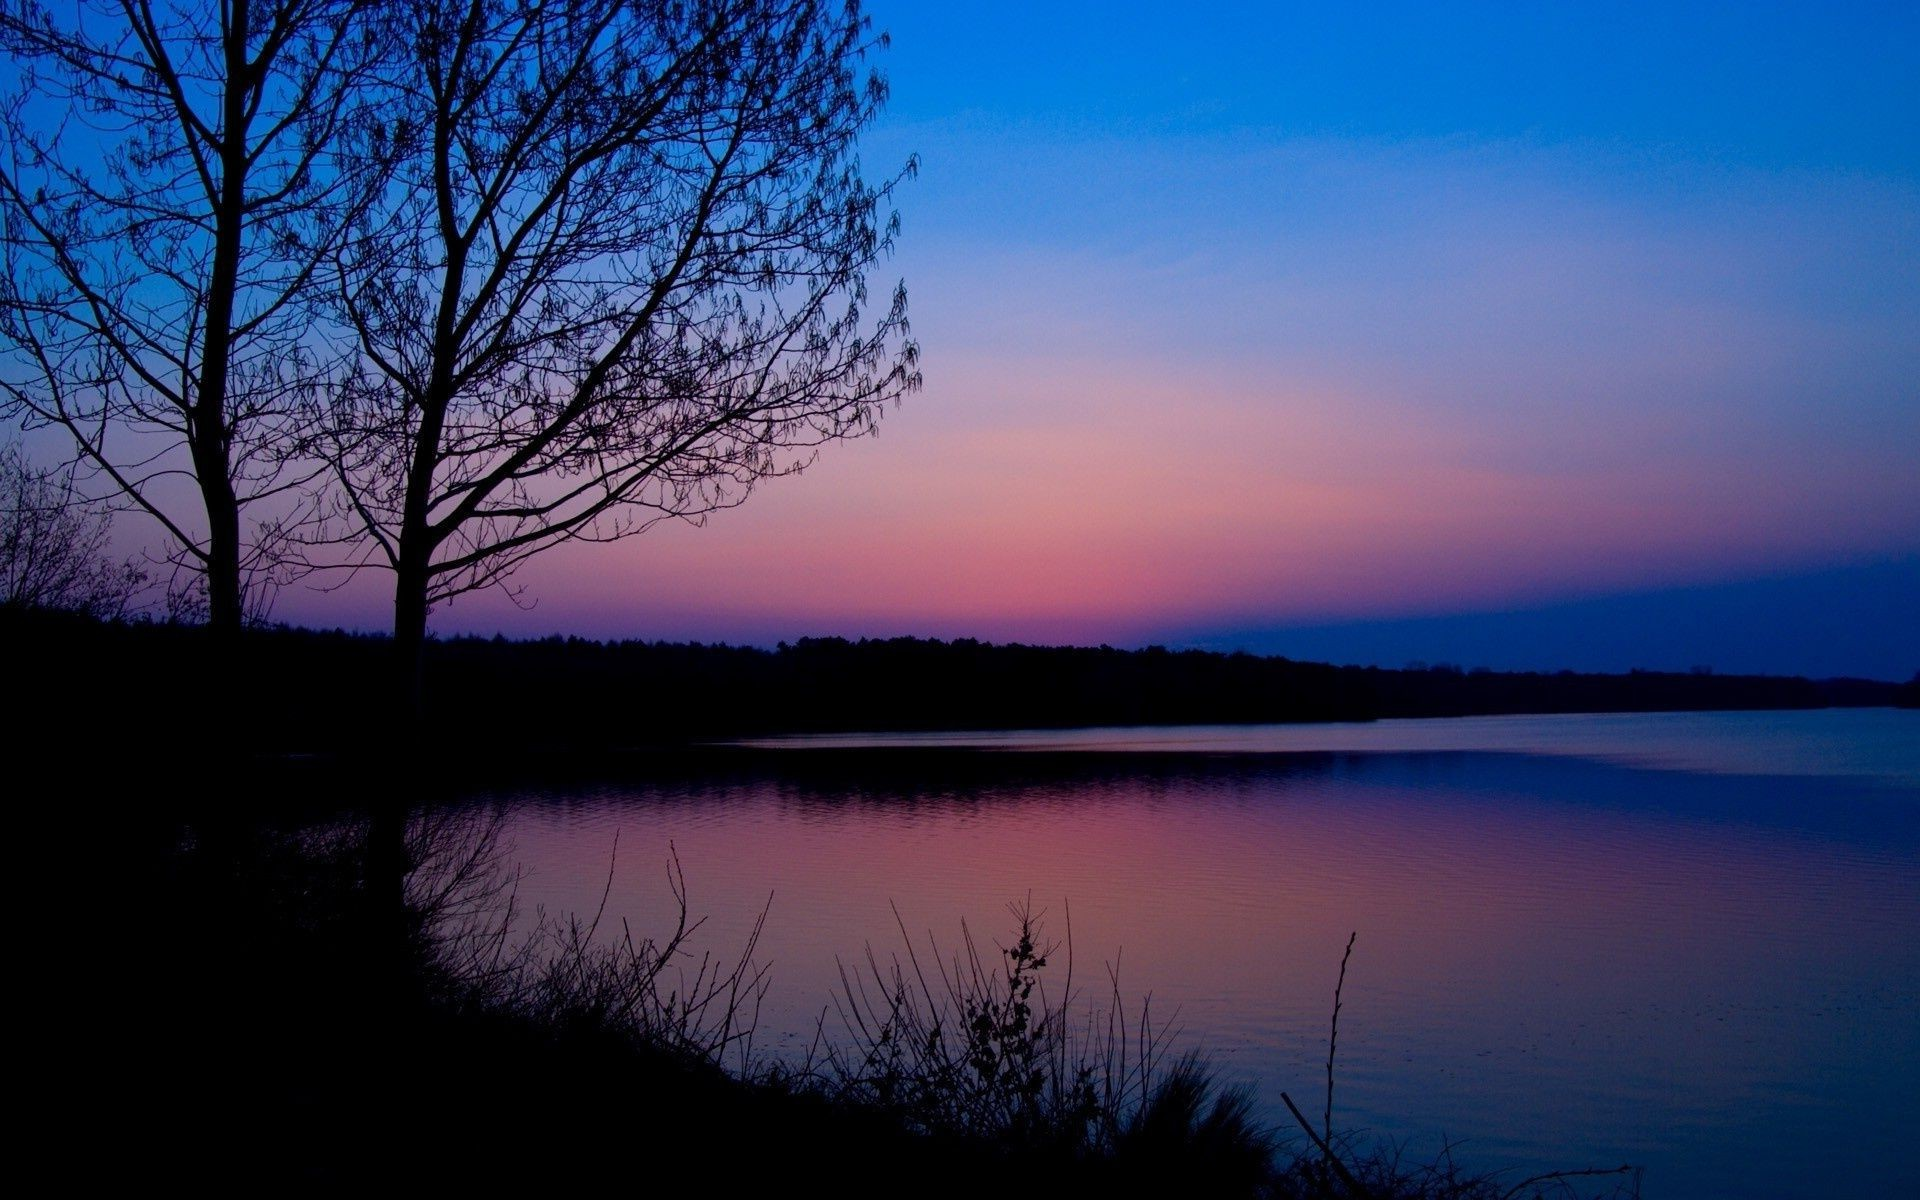 Dawn blue pink forest river